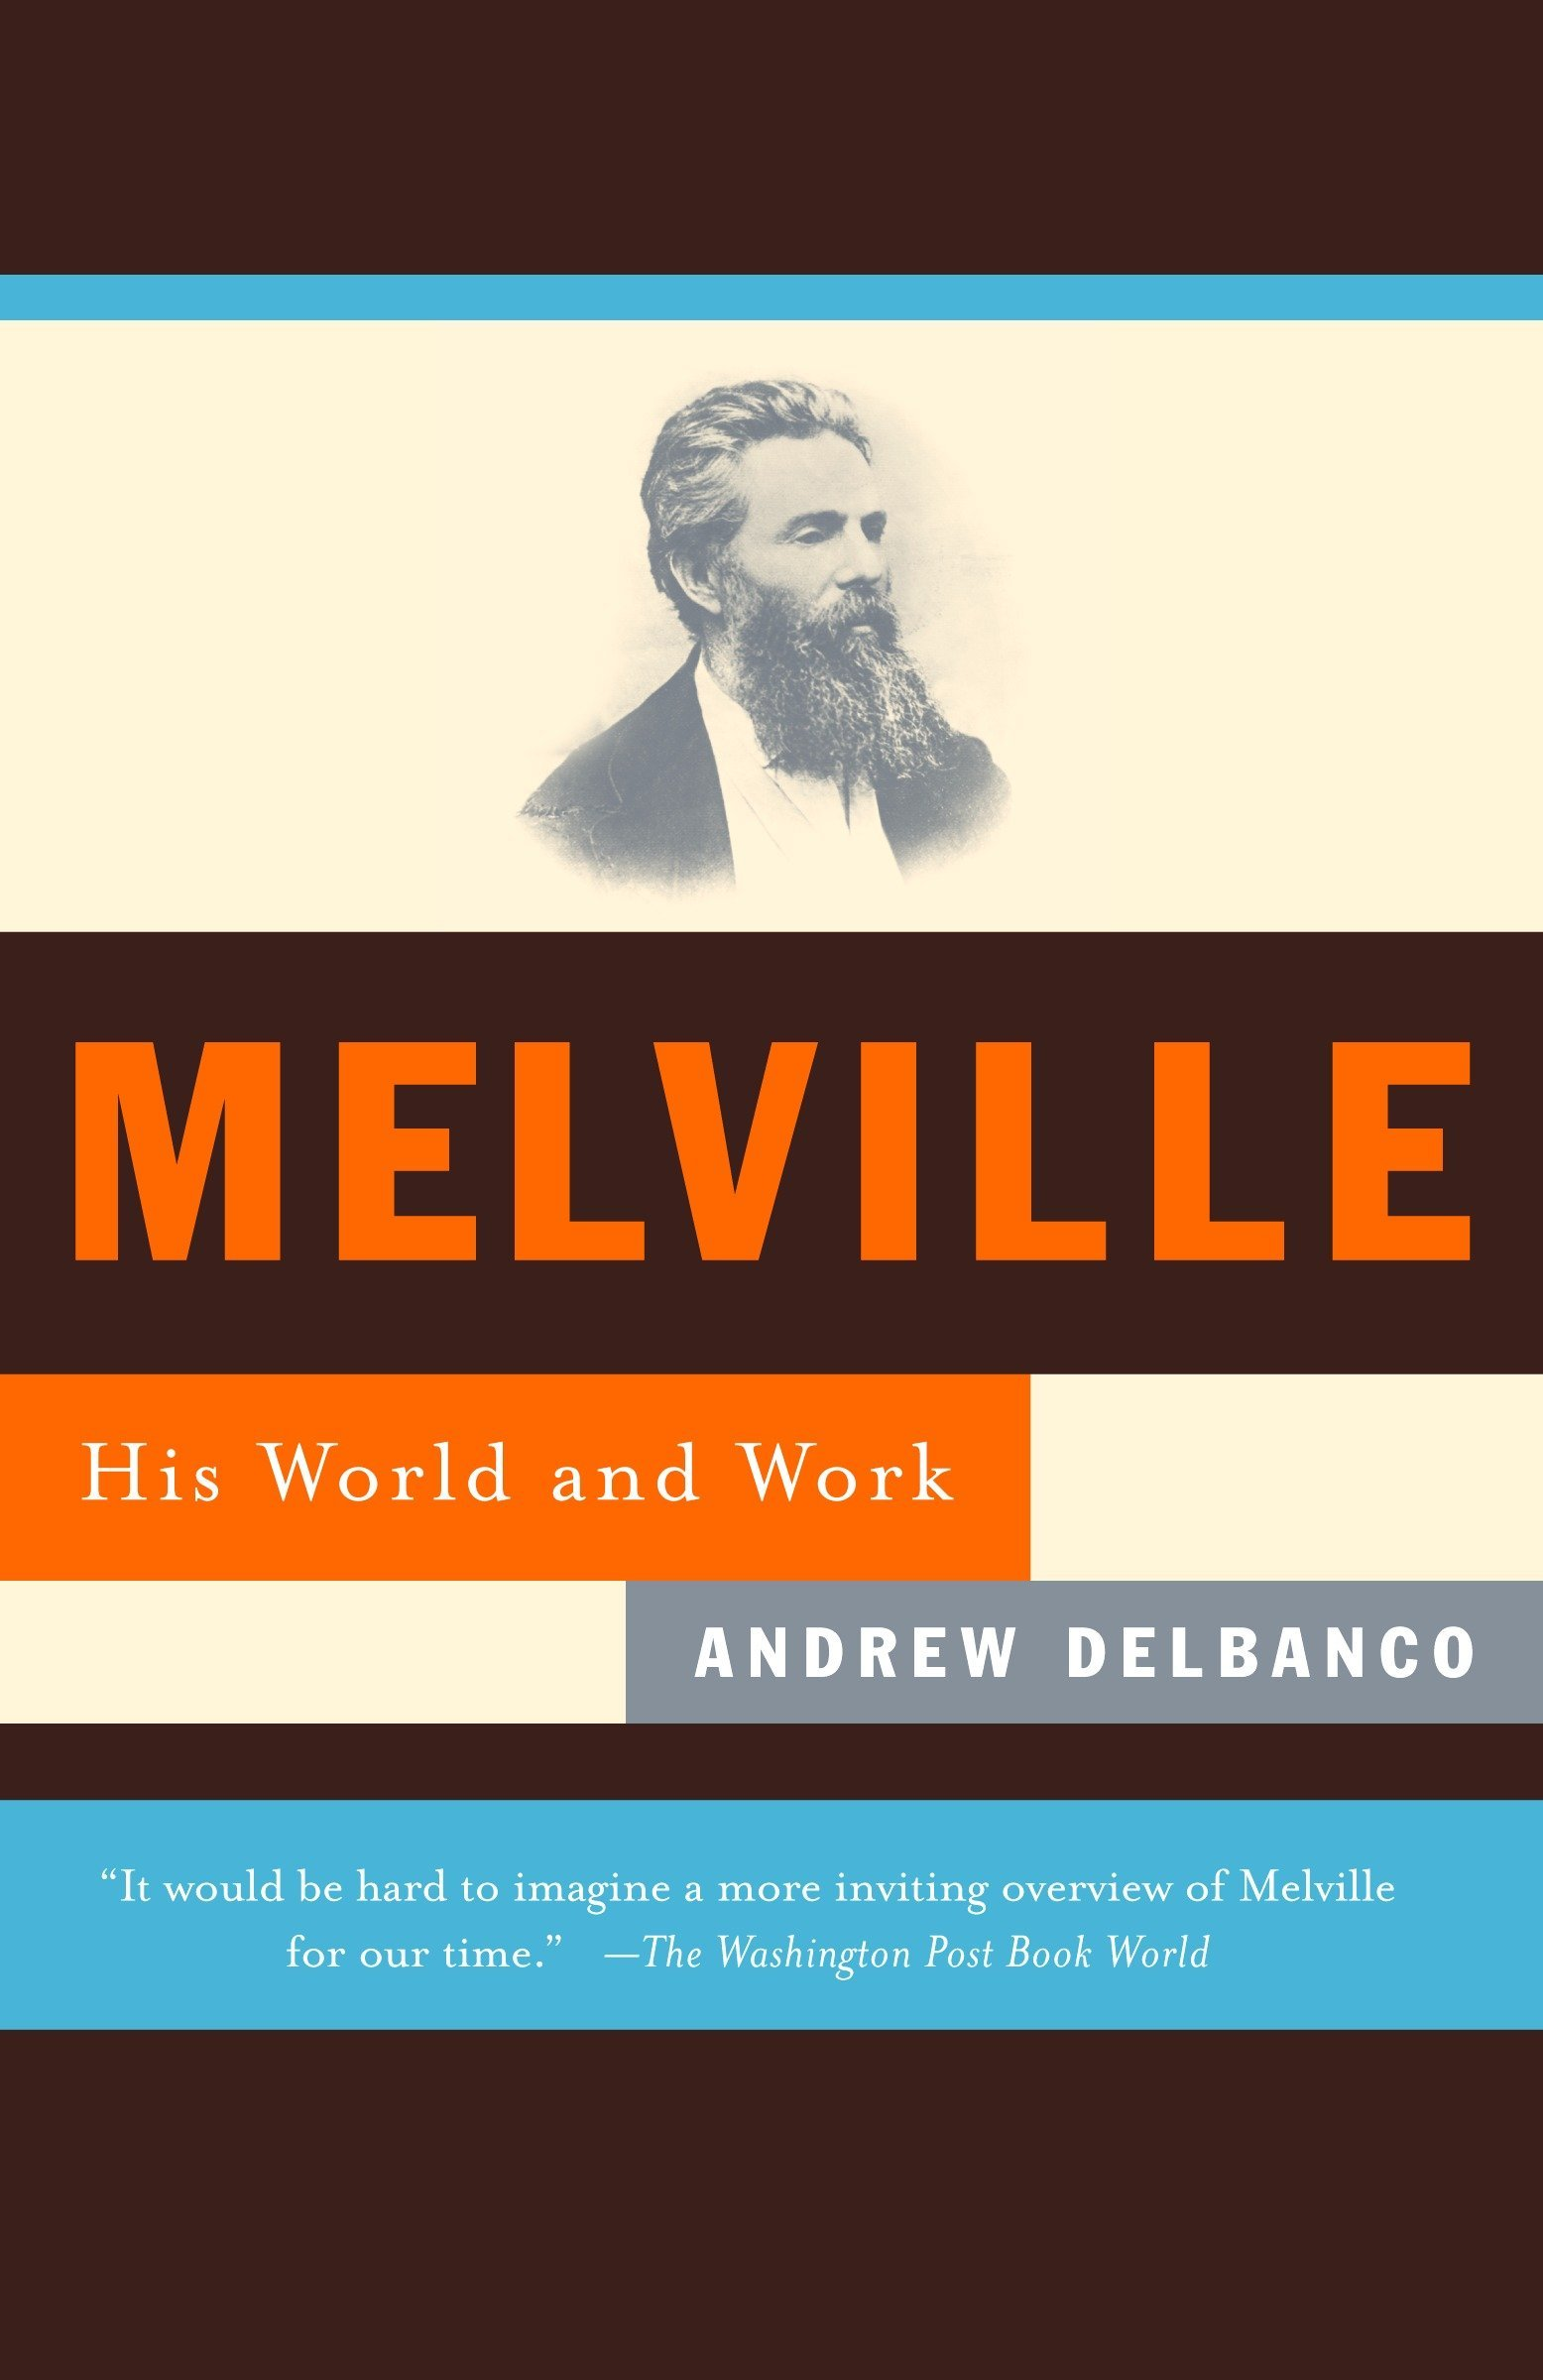 Amazon.com: Melville: His World and Work (9780375702976): Andrew Delbanco:  Books